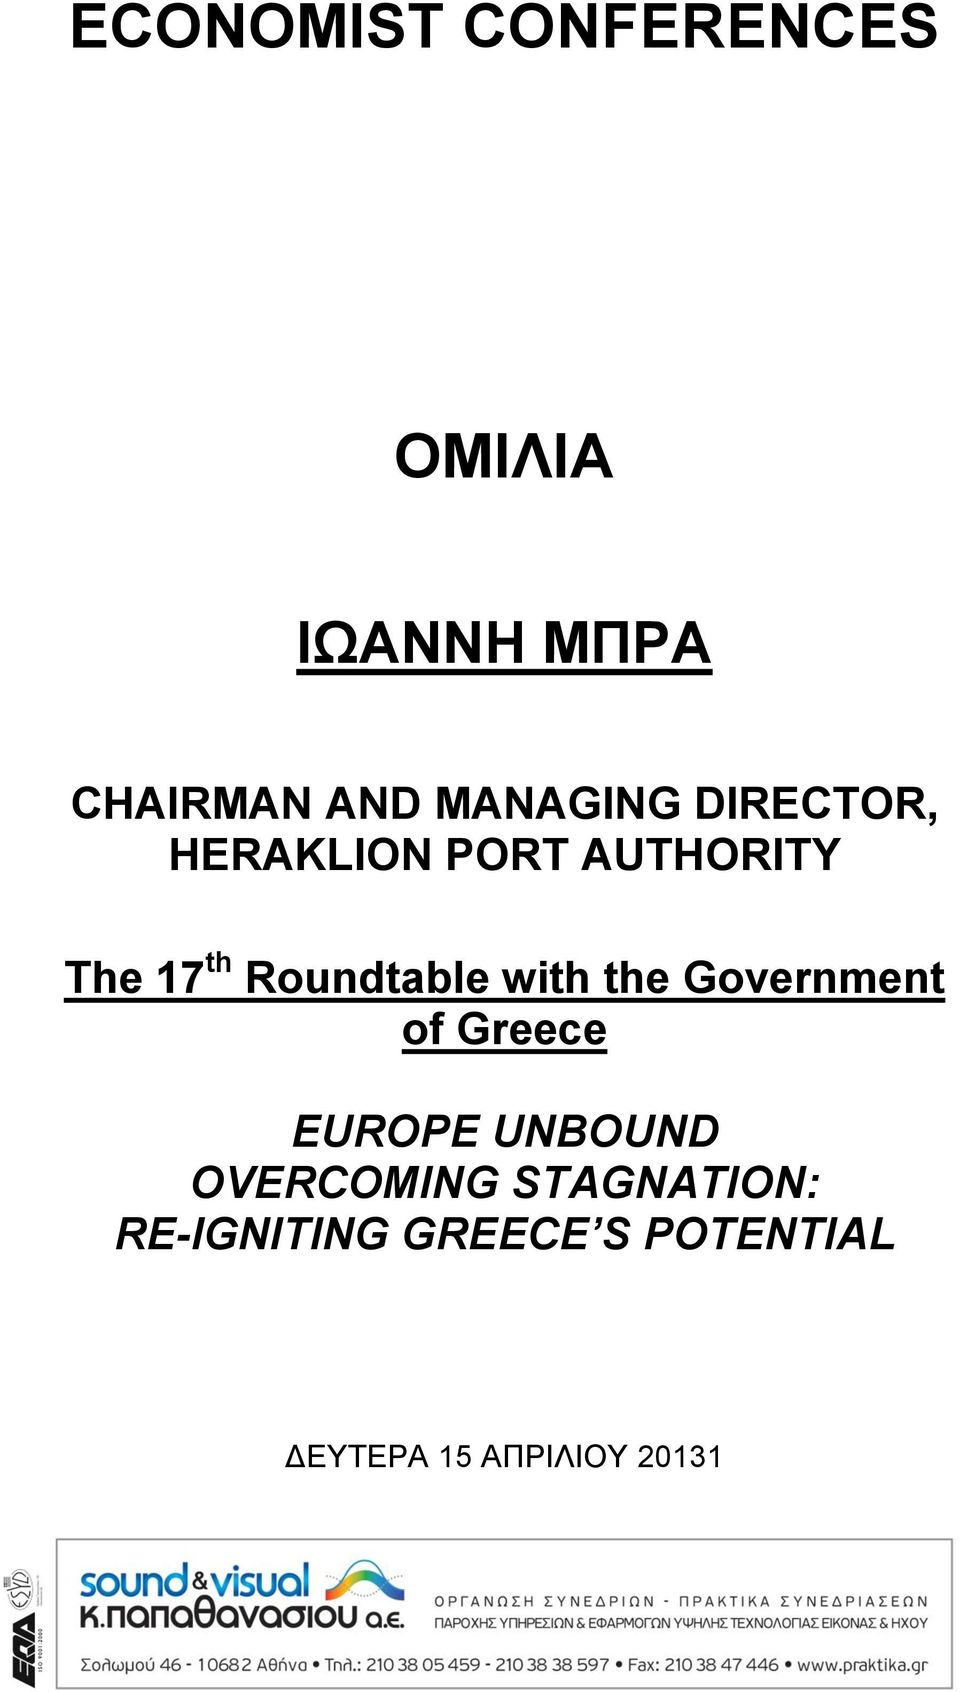 Roundtable with the Government of Greece EUROPE UNBOUND